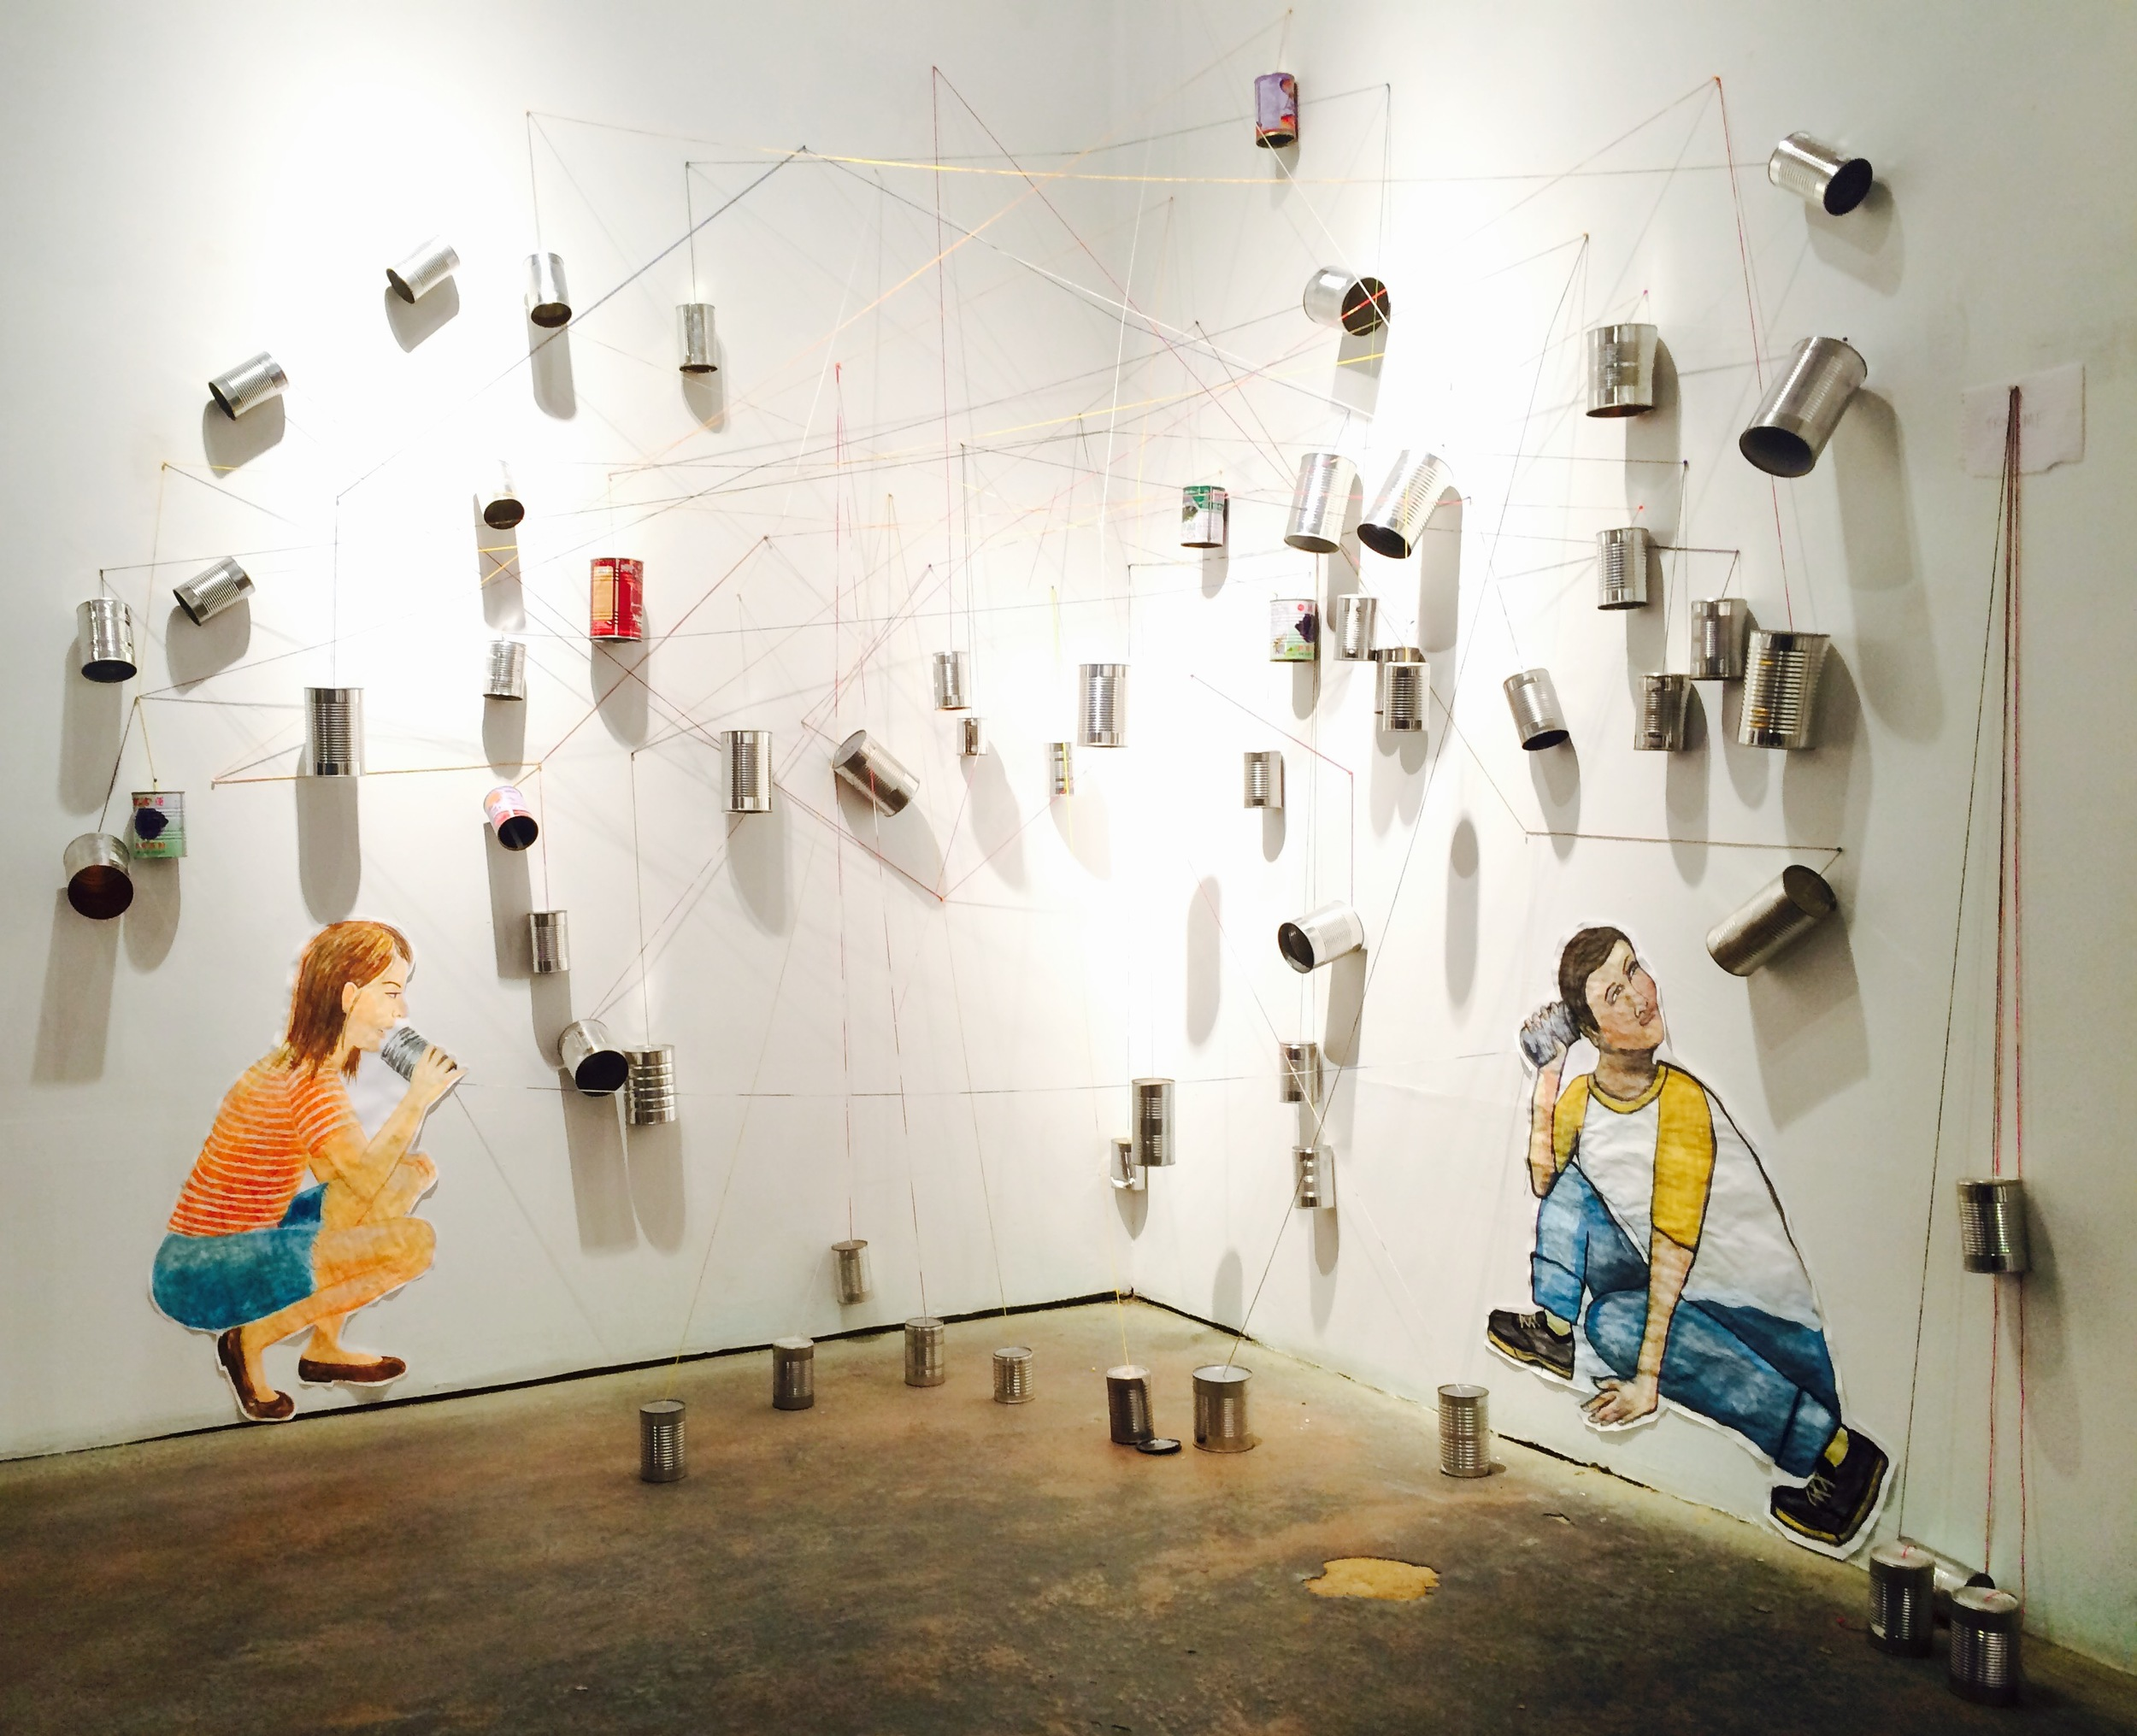 String Theory, art installation by Frances Marin and Anabella Pi ñ on at Citadel Gallery. Watercolor, paper, dyed string and cans.